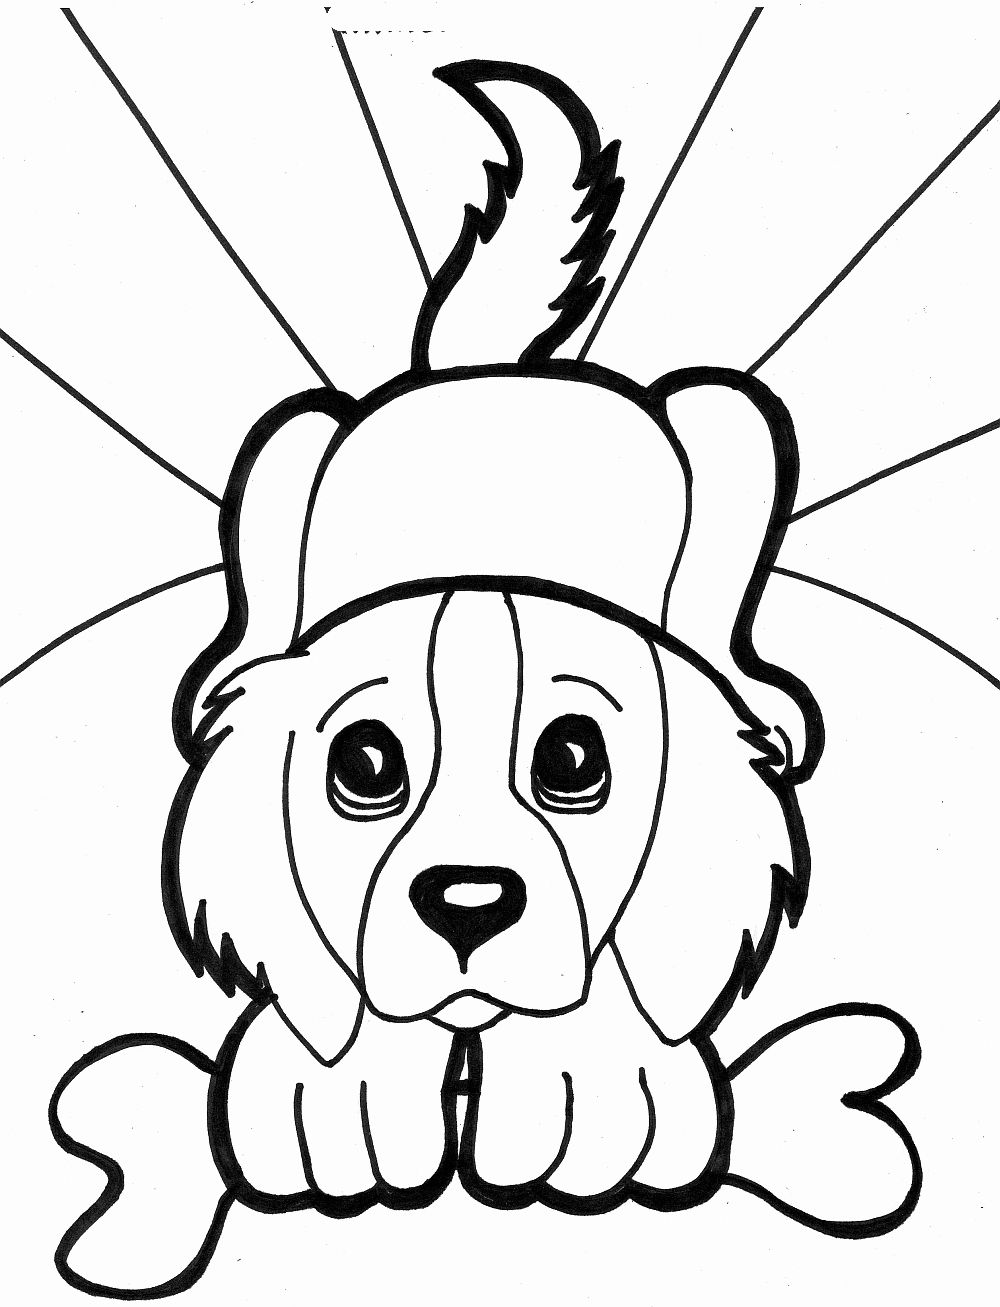 Coloring Pages Of Puppies Inspirational Printable Dogs Coloring Pages To Kids Puppy Coloring Pages Dog Coloring Page Animal Coloring Pages [ 1307 x 1000 Pixel ]